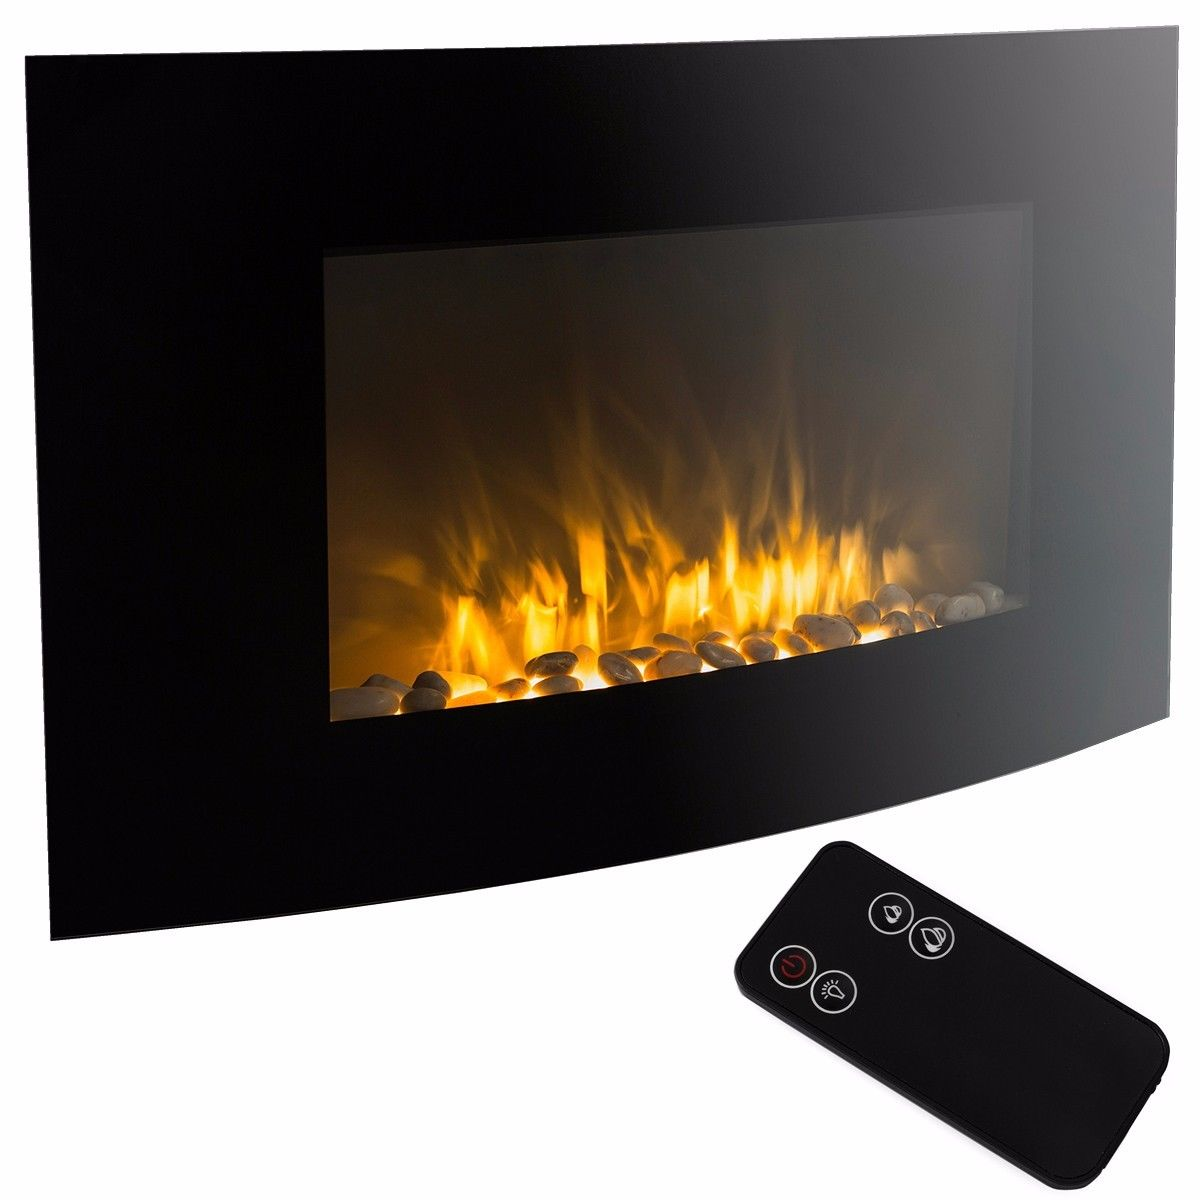 "GHP 35""x22"" 1500W Adjustable Wall Mount Electric Fireplace Heater with Remote Control"